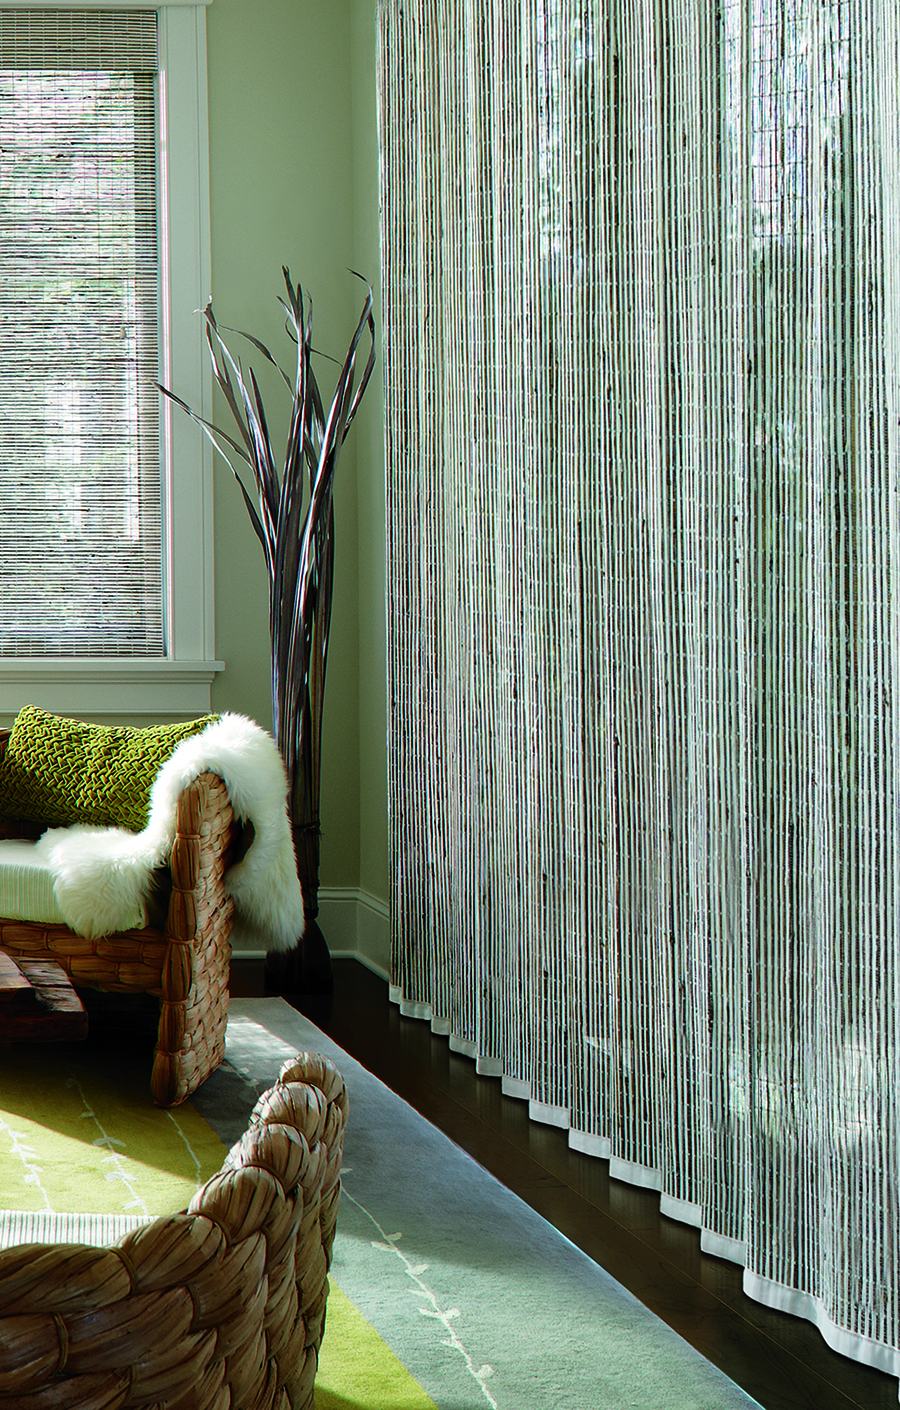 Woven wood shades on sliding glass doors.